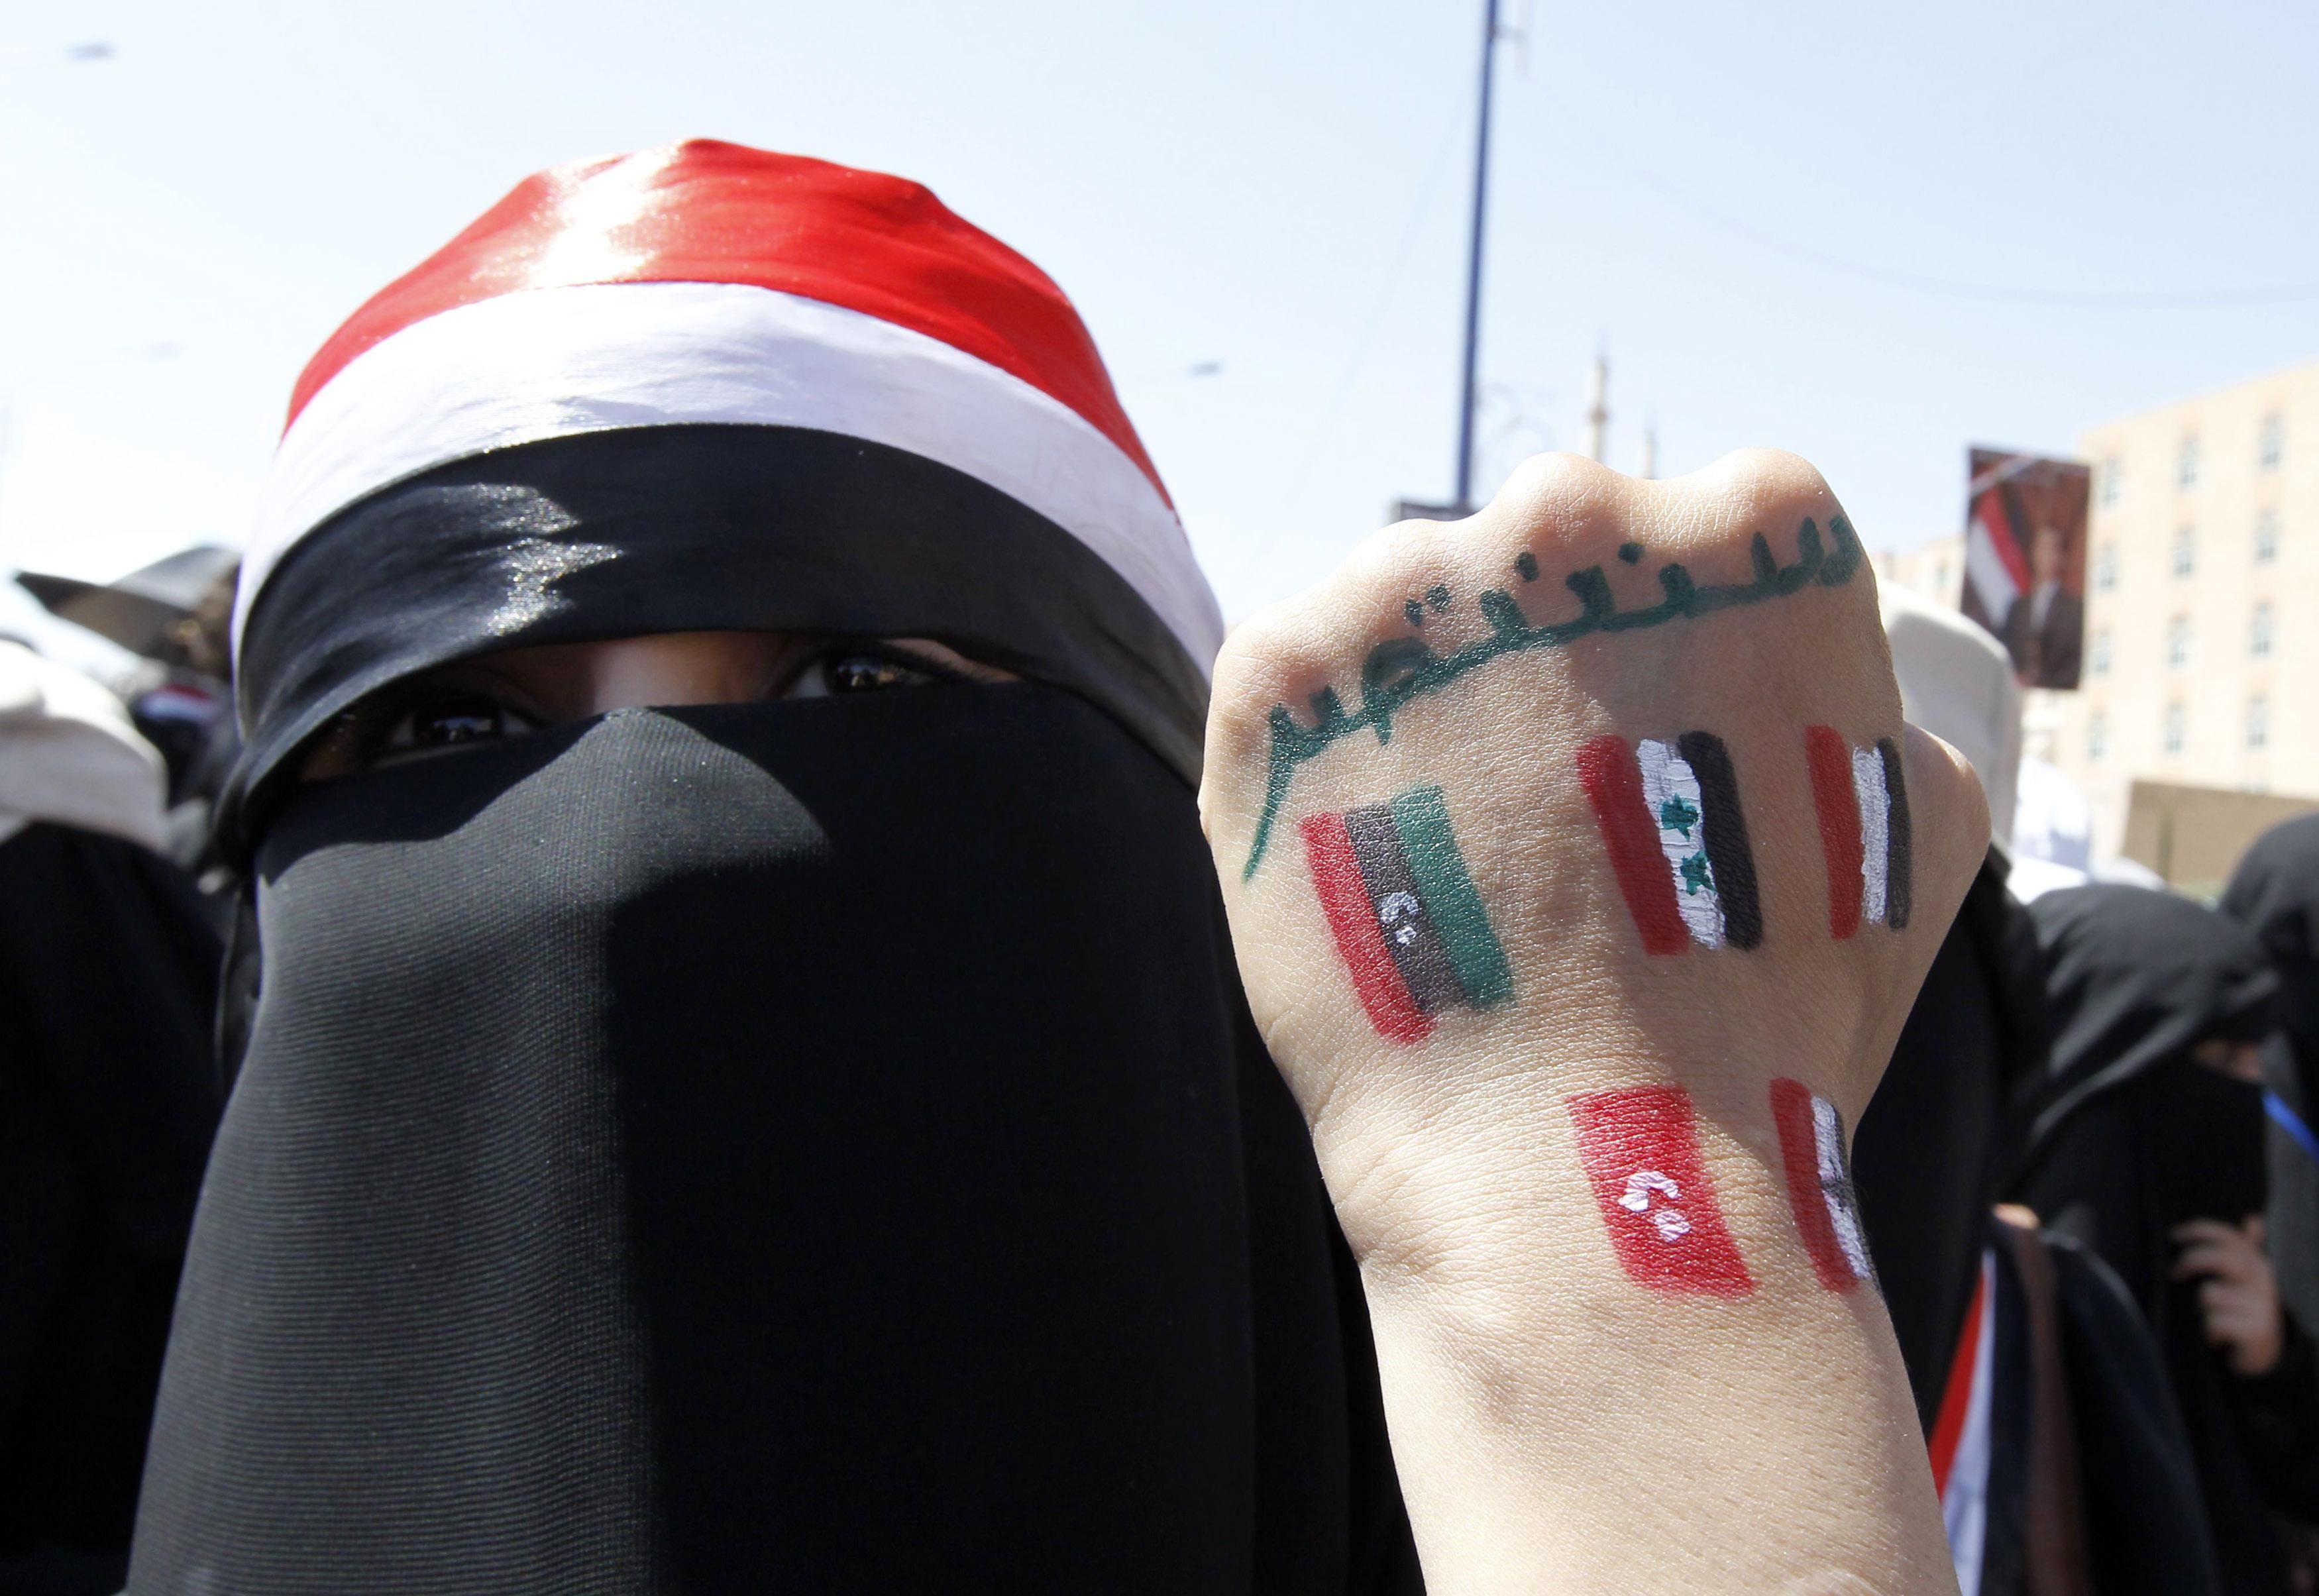 An anti-government protester displays paintings on her hand in Sanaa, Yemen, during the Arab Spring marches in 2011. Reuters